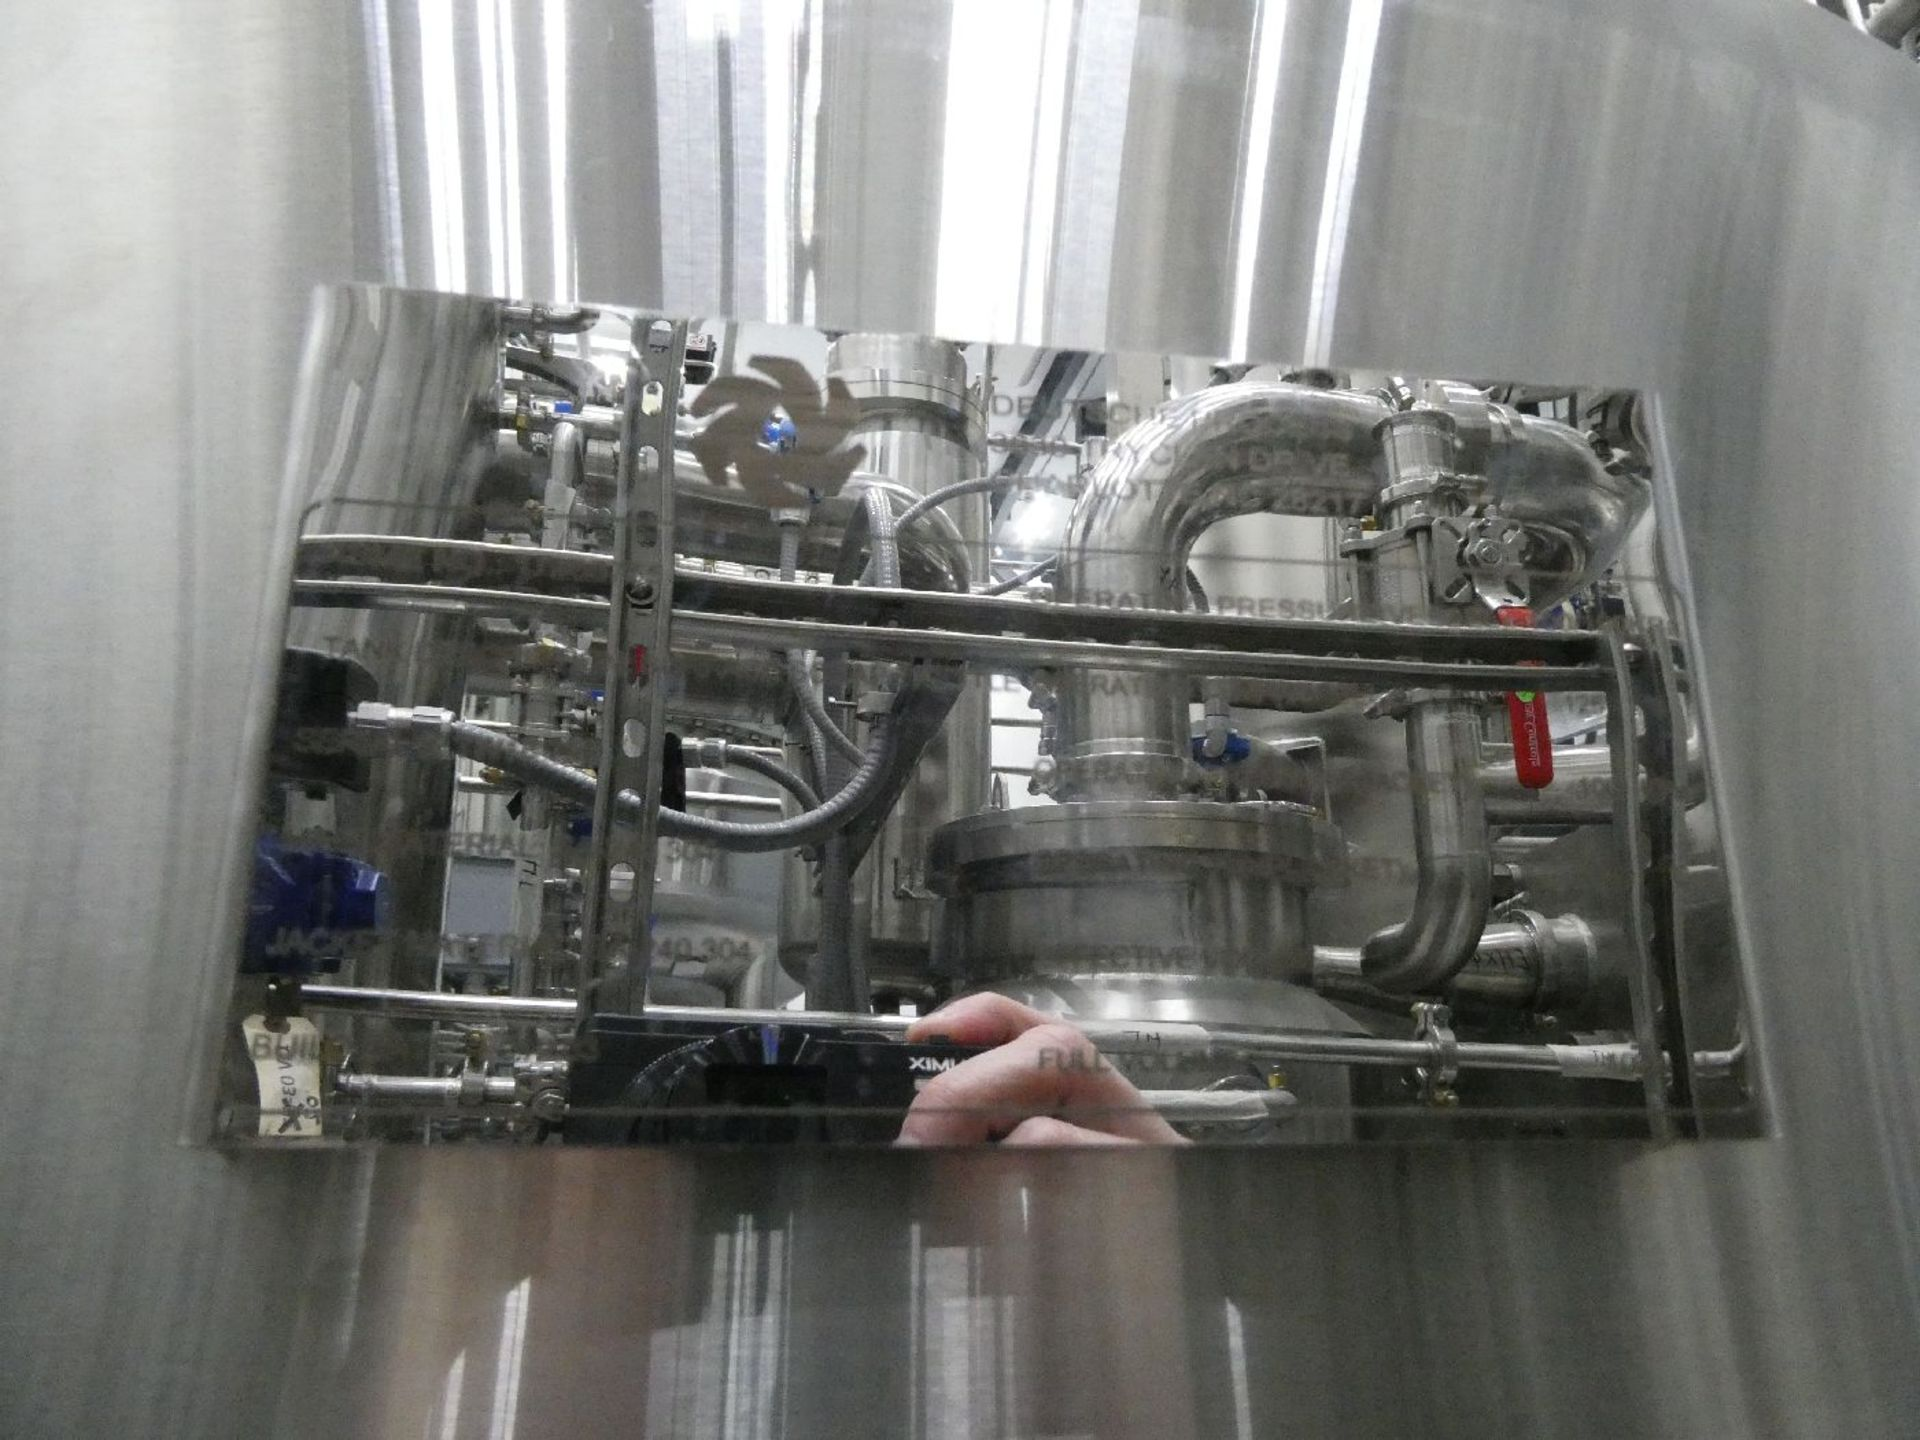 ROTAX Closed Loop Solvent Based Continuous Oil Extraction System - Image 42 of 68